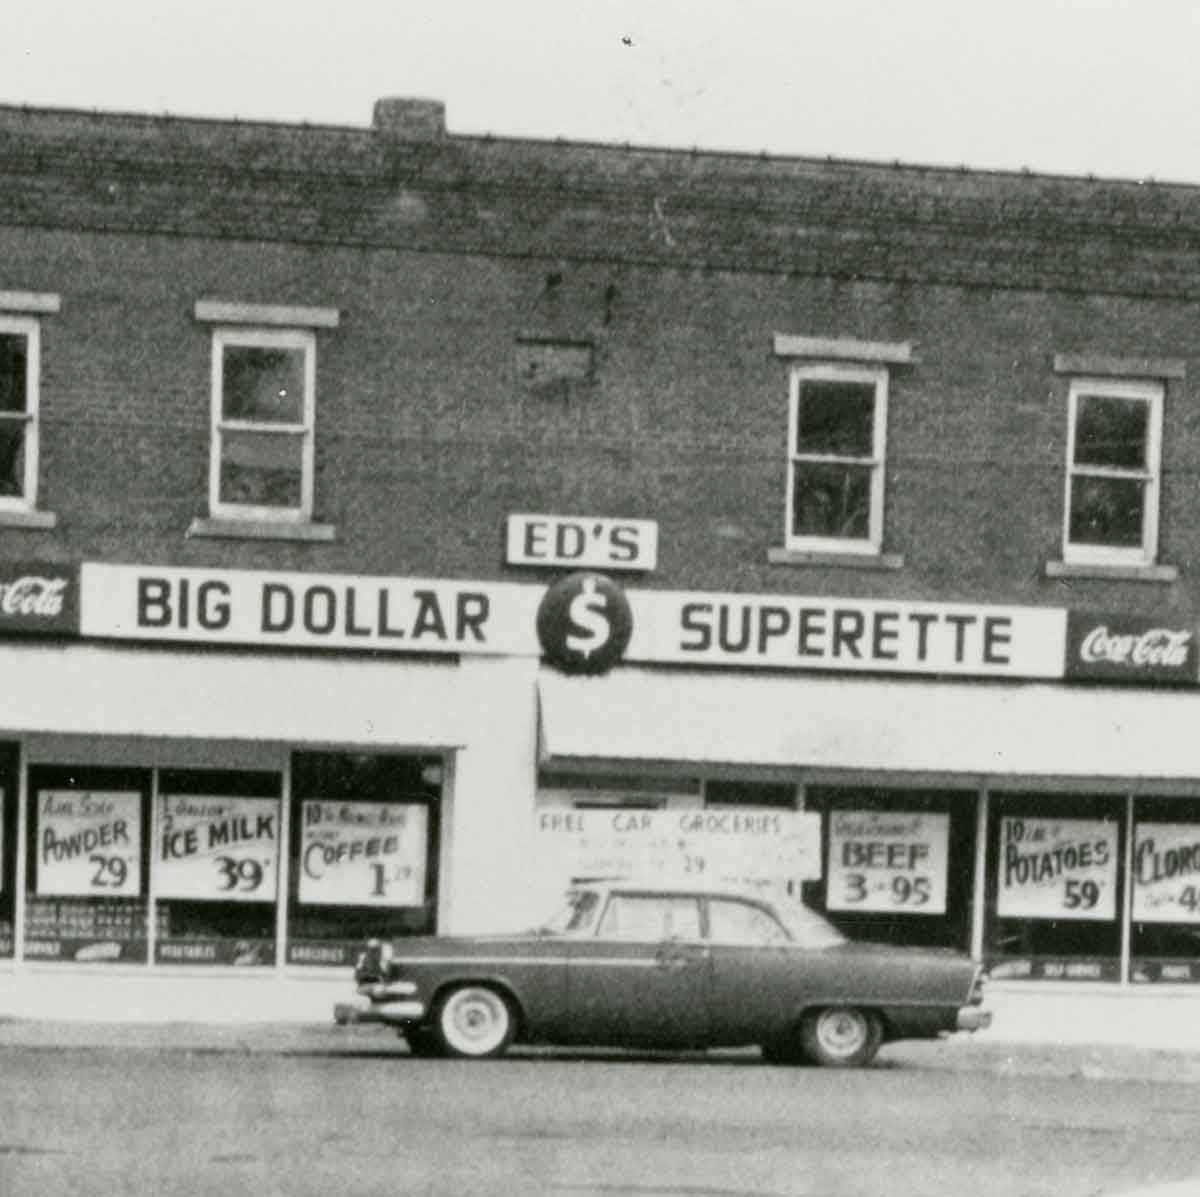 Big Dollar Superette